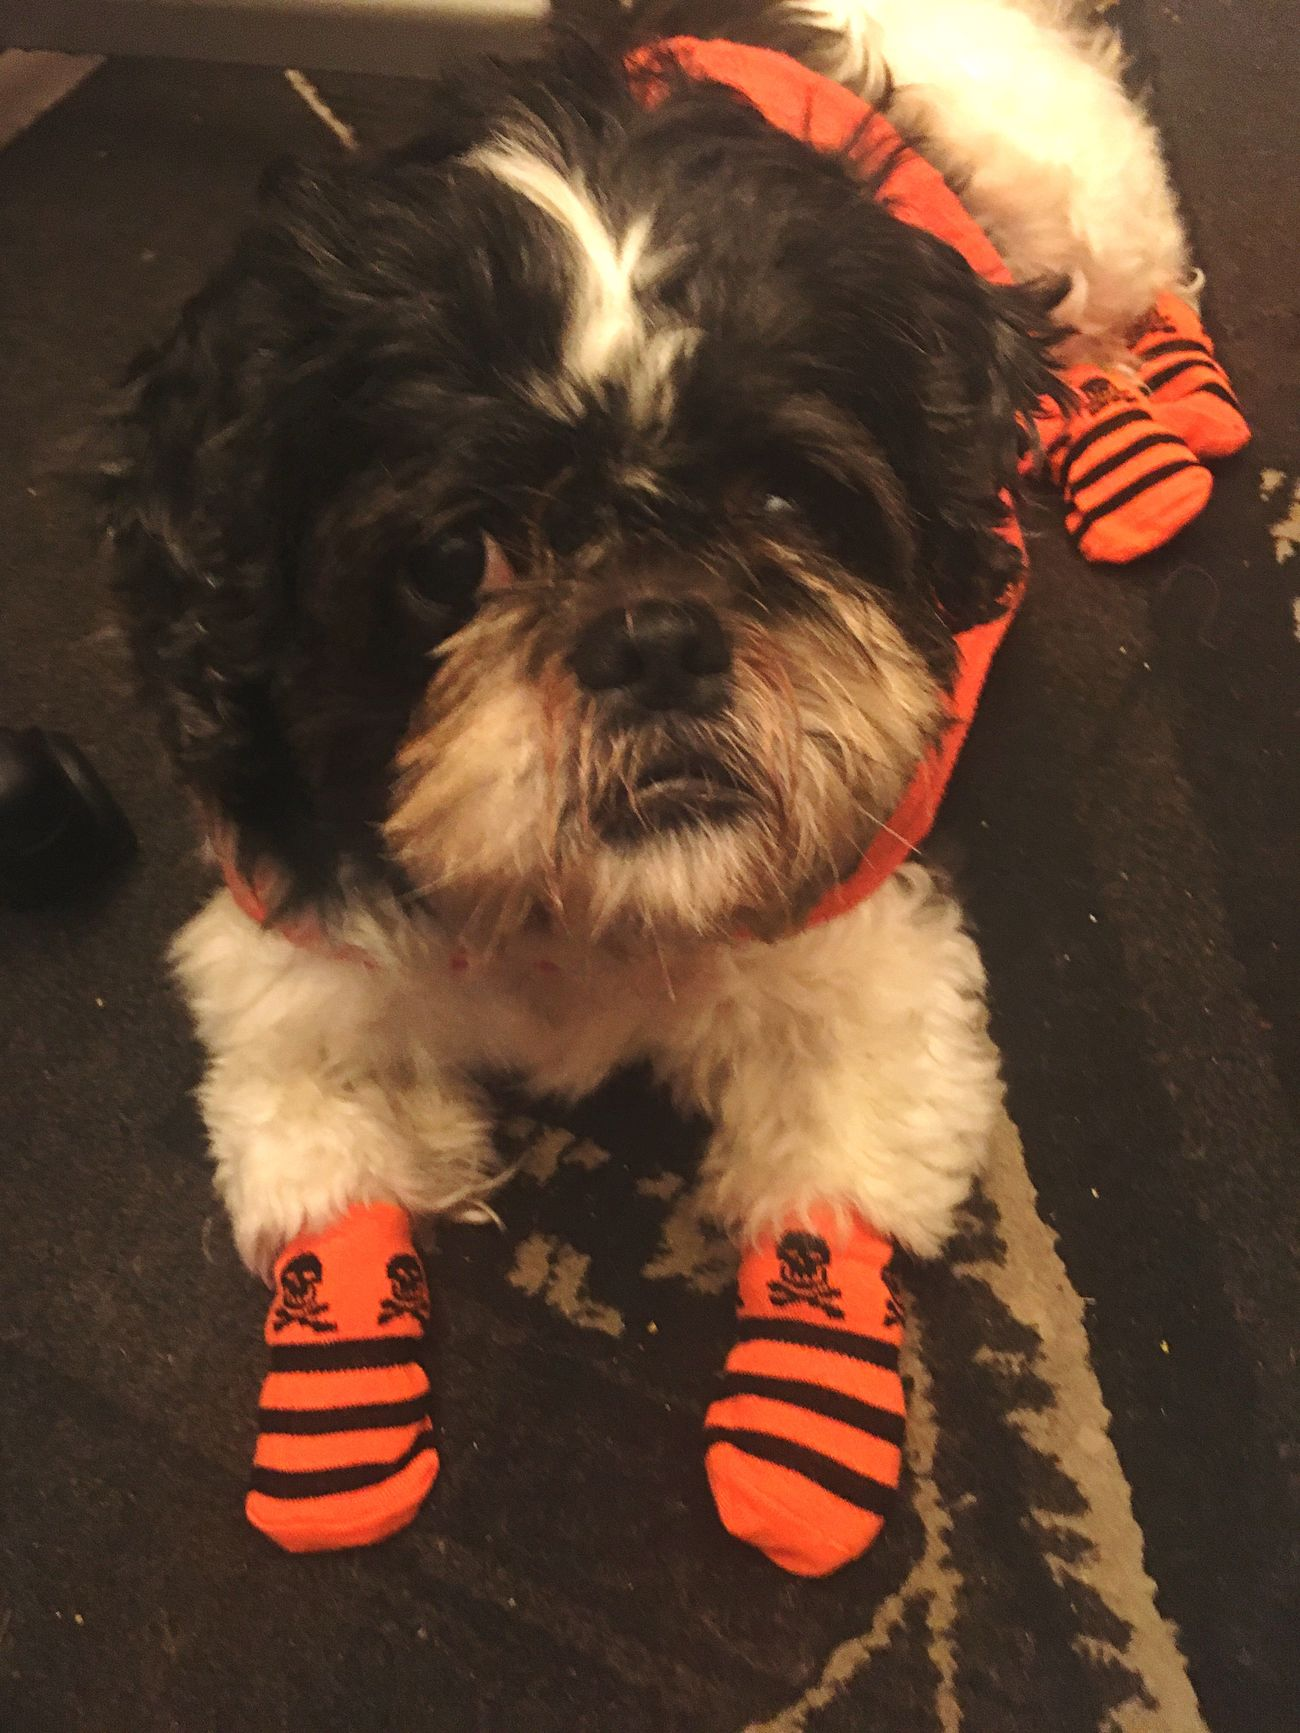 My little Pumpkin benjy Pets Dog Domestic Animals Mammal One Animal Animal Themes Looking At Camera Portrait Red Puppy Indoors  No People Pet Clothing Dogs Photography Shih Tzu Day Focus Object Fall Baby Halloween